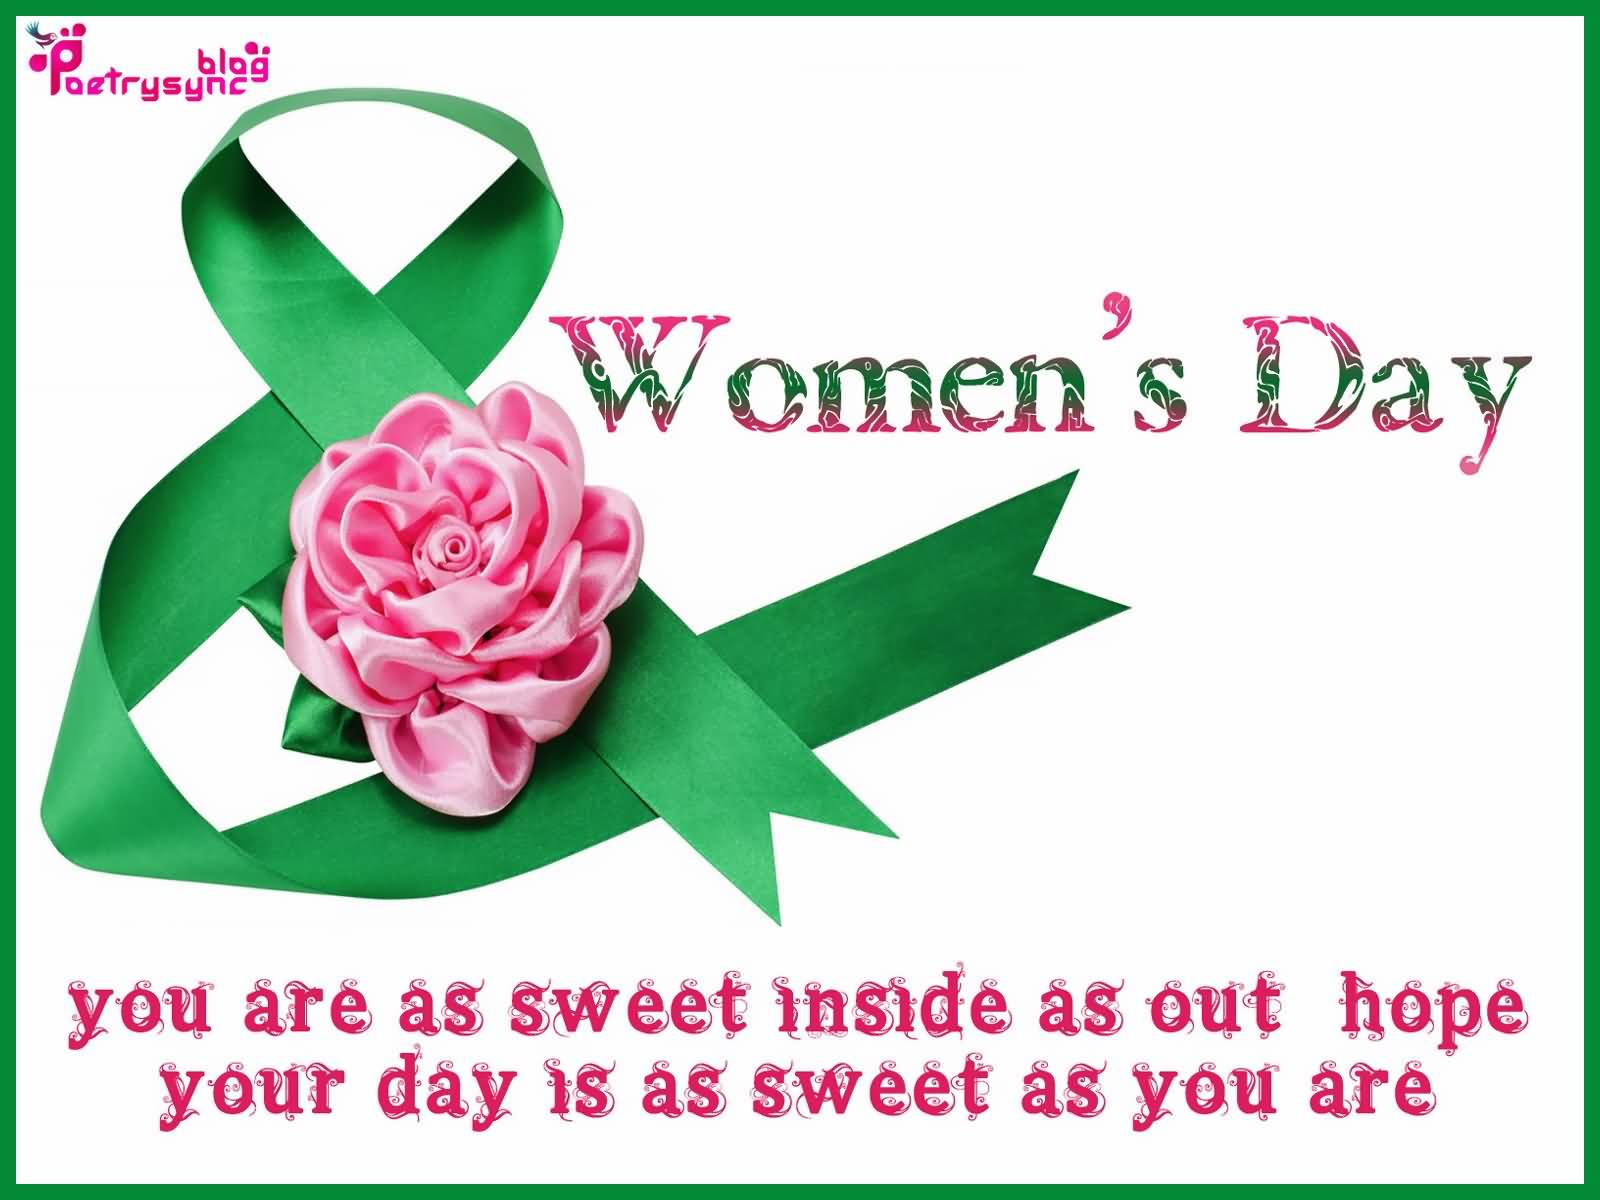 Sweet Women's Day Wishes Quotes Image